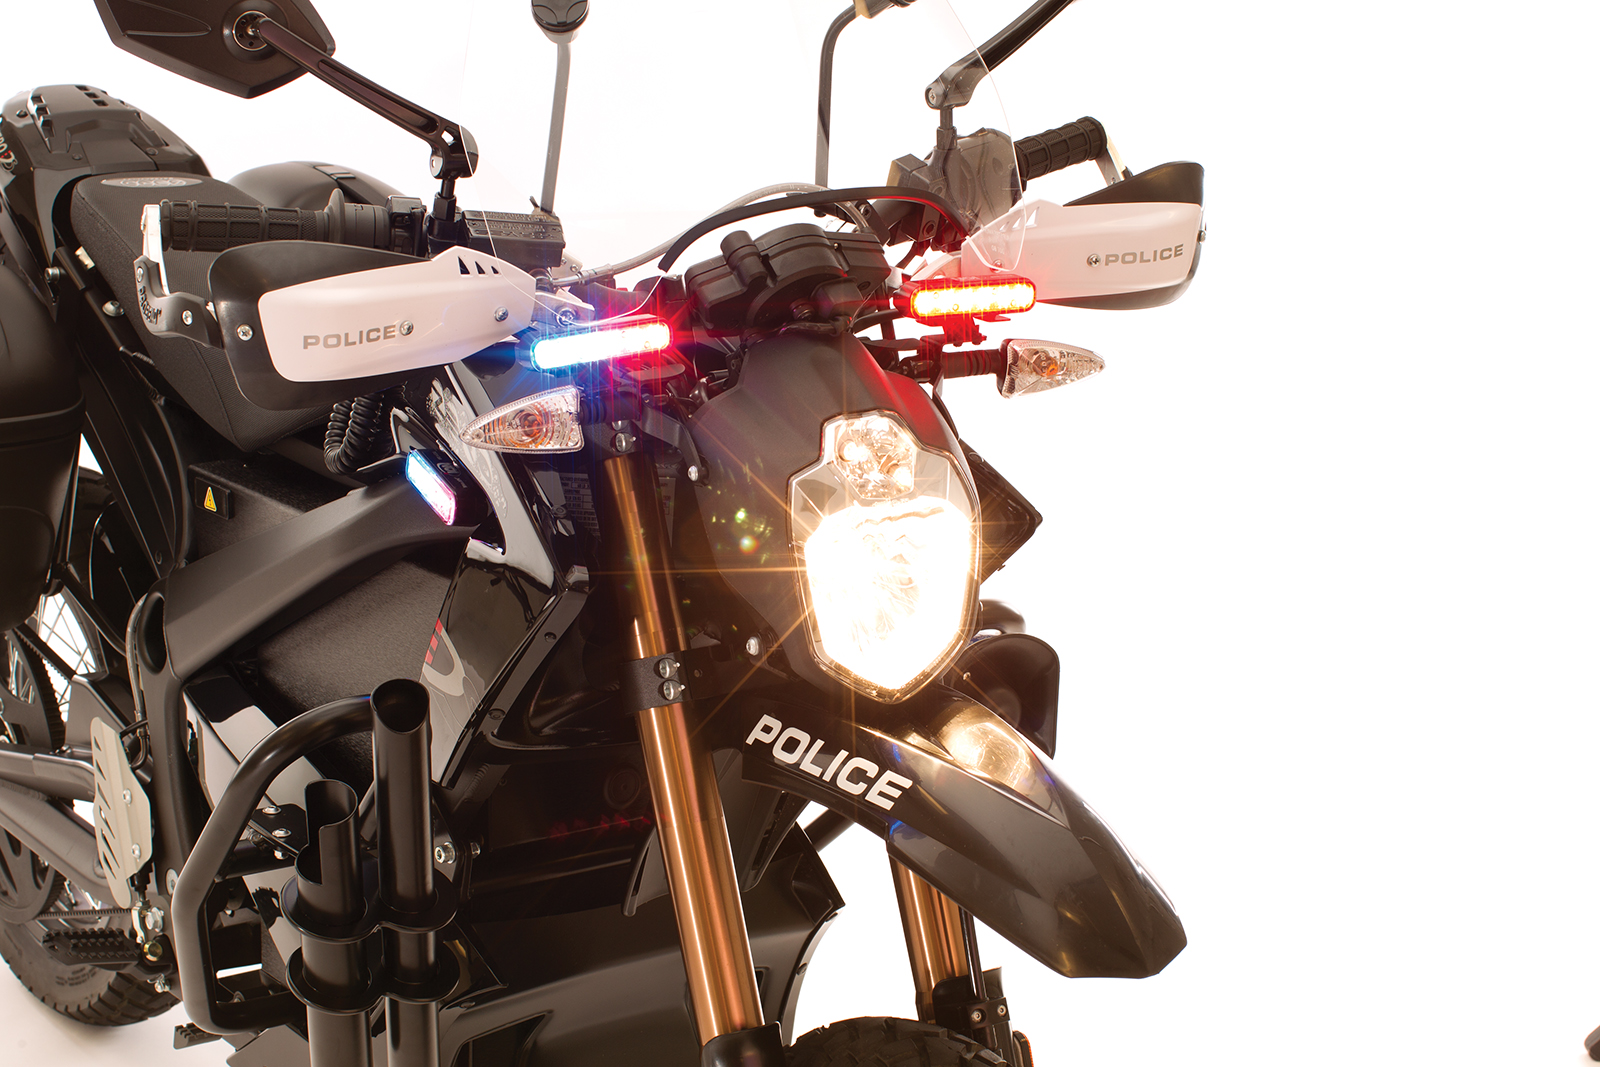 2012 Zero DS Police Motorcycles: Whelen LINZ 6 forward facing LEDs